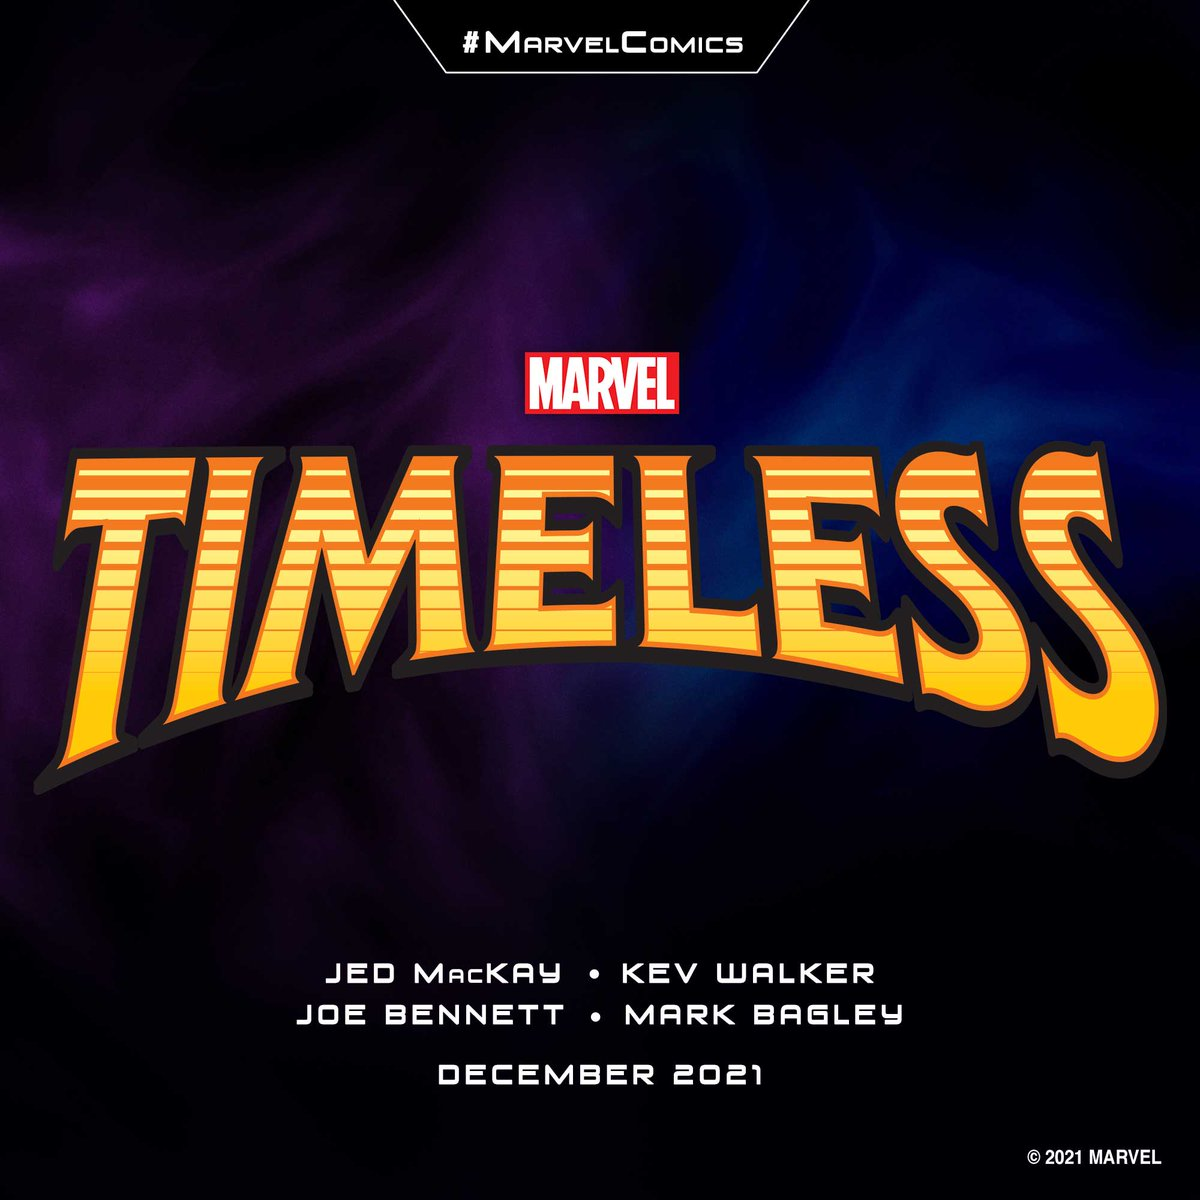 """Marvel Entertainment on Twitter: """"The future of the Marvel Universe is  here, and 'Timeless' is where it all begins. @jedmackay, Kev Walker, Joe  Bennett, Mark Bagley, and more help Kang set the"""